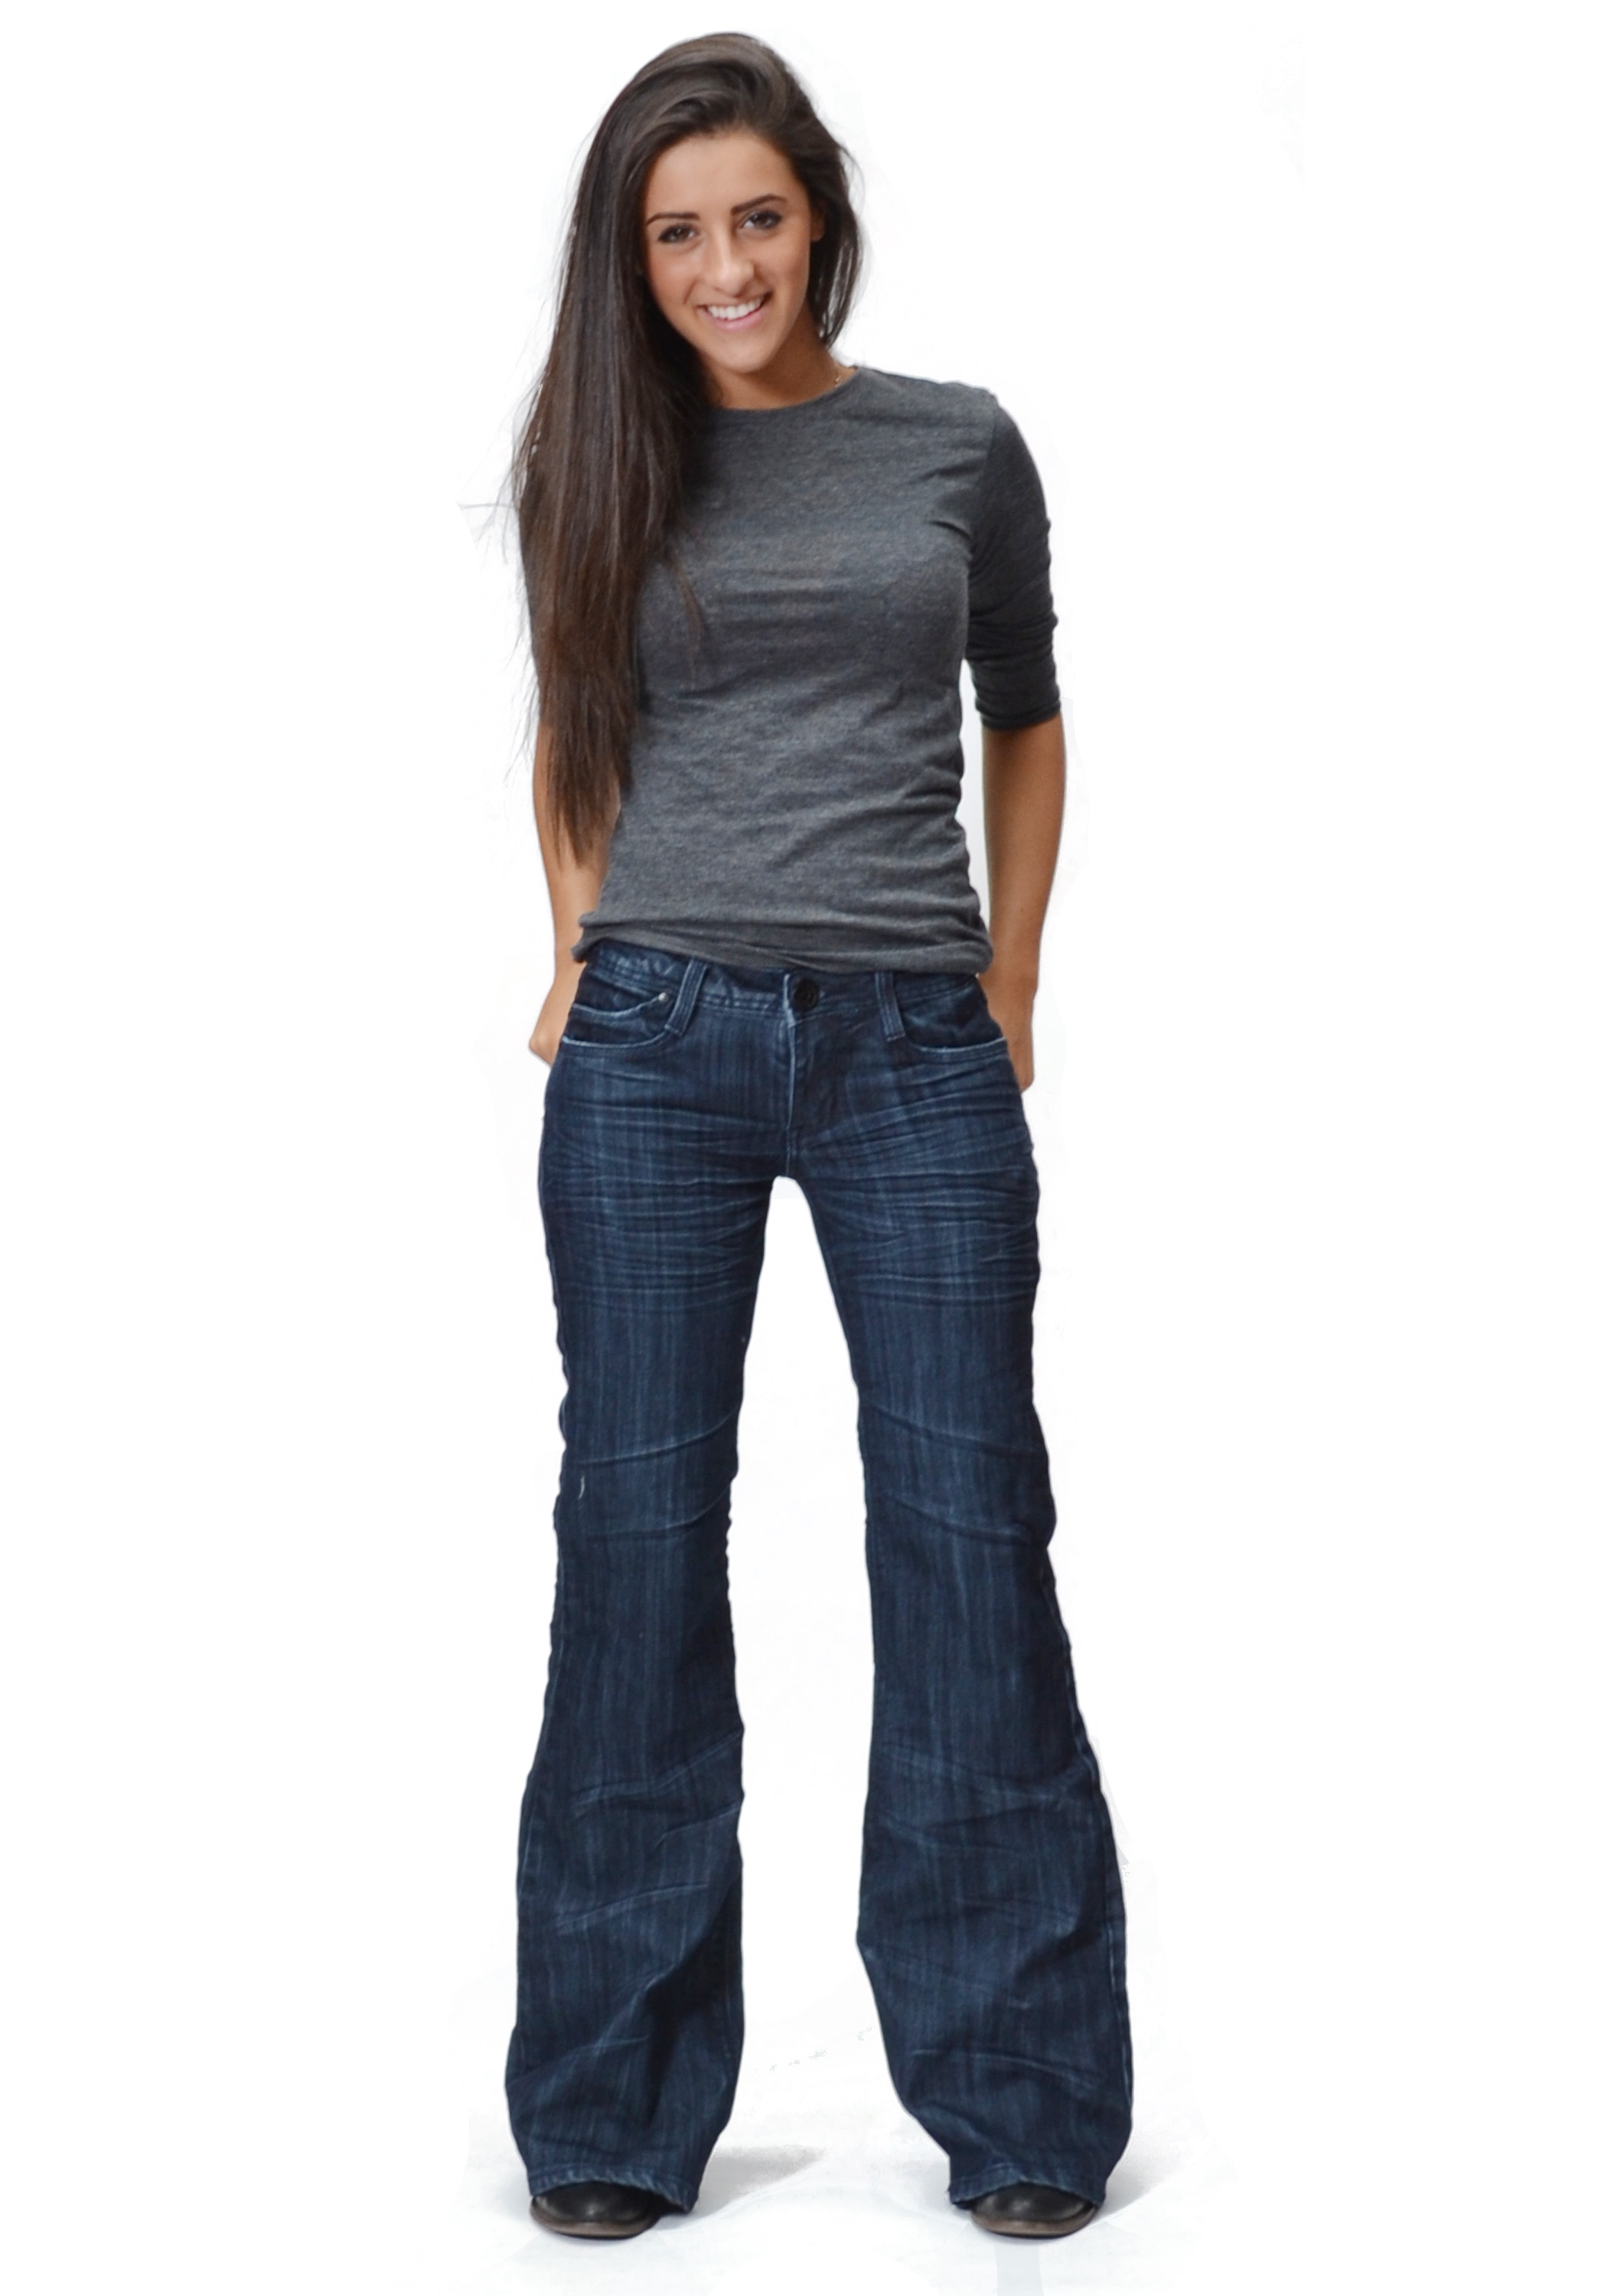 Our women's flare jeans are a modern take on the infamous 70's bell bottoms look. Our collection consists of ripped jeans, white jeans, and more, all in the flared .